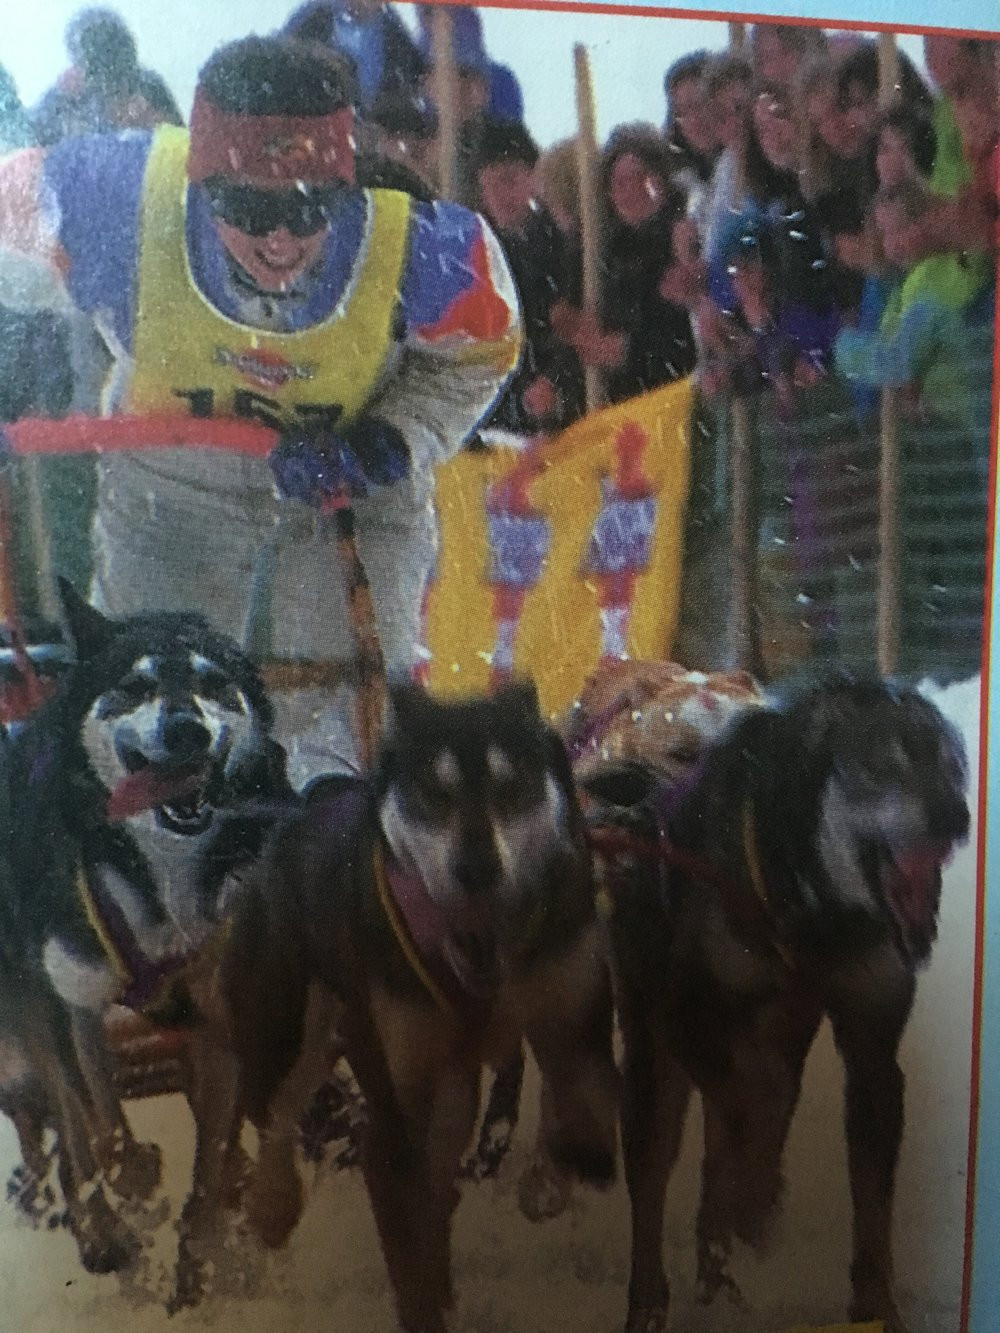 I did Sleddog sport from 1986 to 1994 -World Champion 1992 -